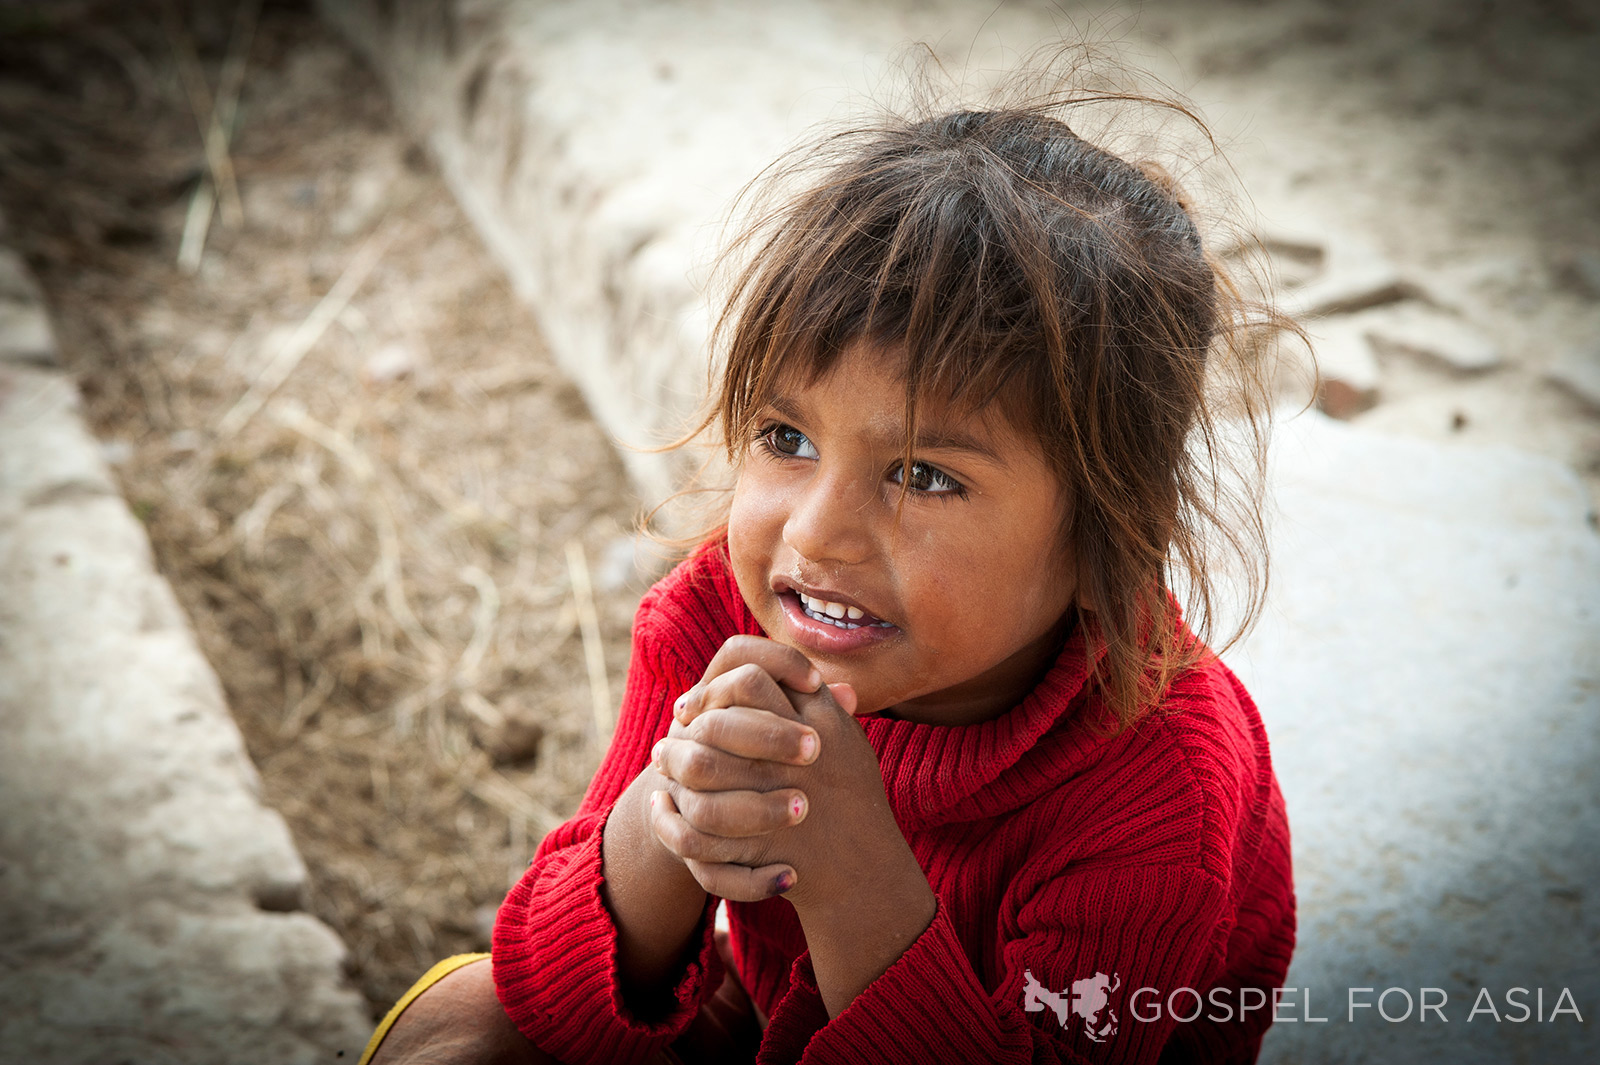 What Truly Meaningful Gifts Can I Give to the Poor This Christmas - KP Yohannan - Gospel for Asia